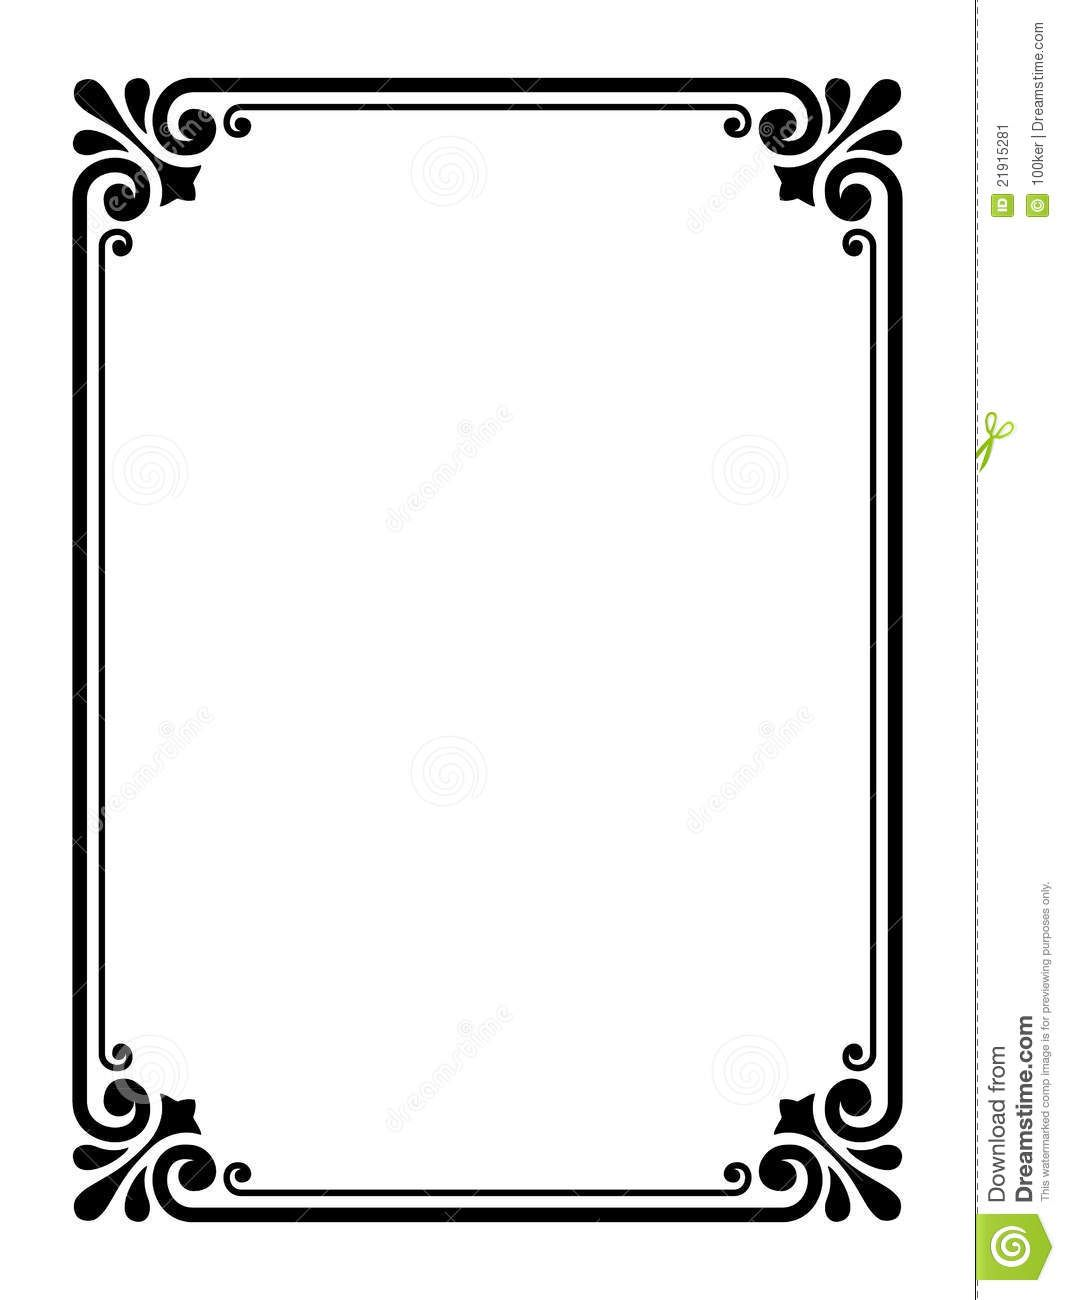 Simple Frame Clipart - Clipart Kid | bordes | Pinterest | Bastelideen